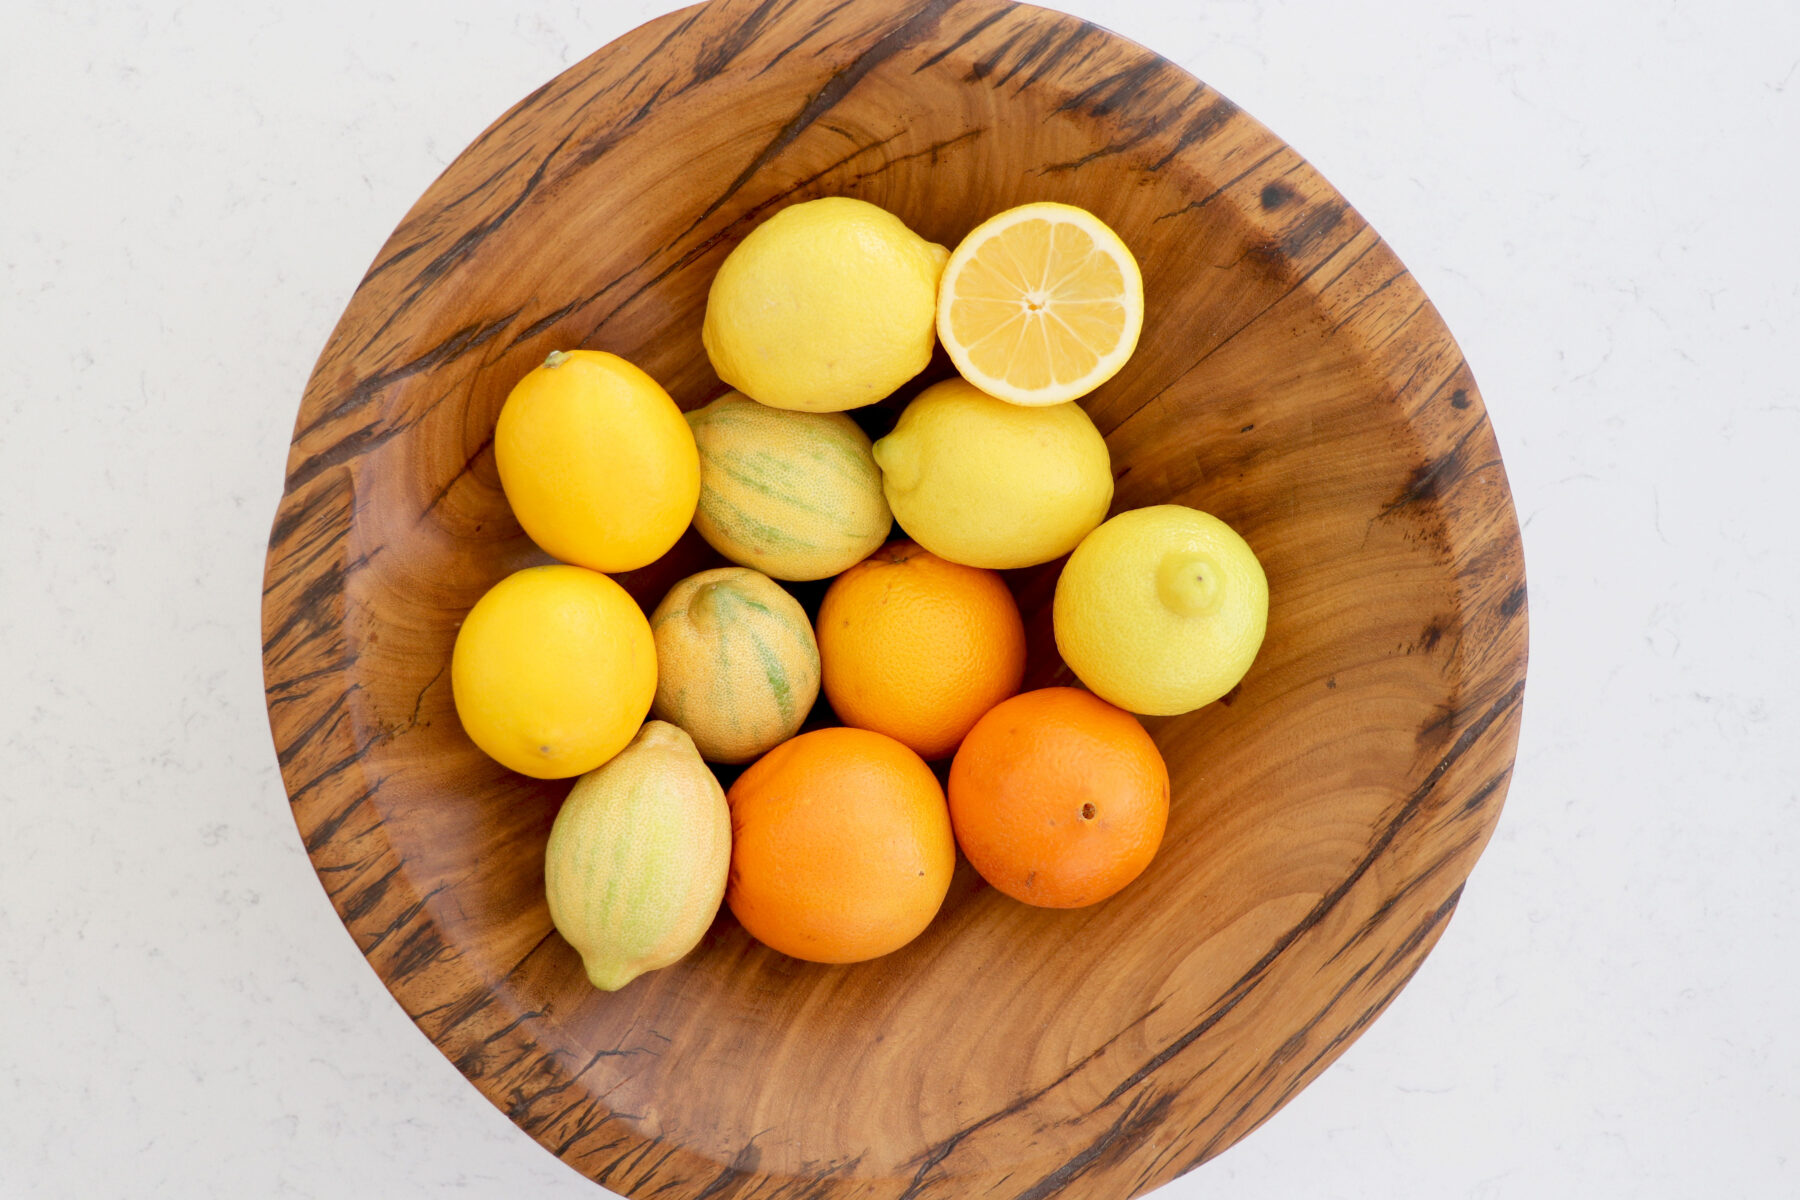 Wooden bowl with citrus.